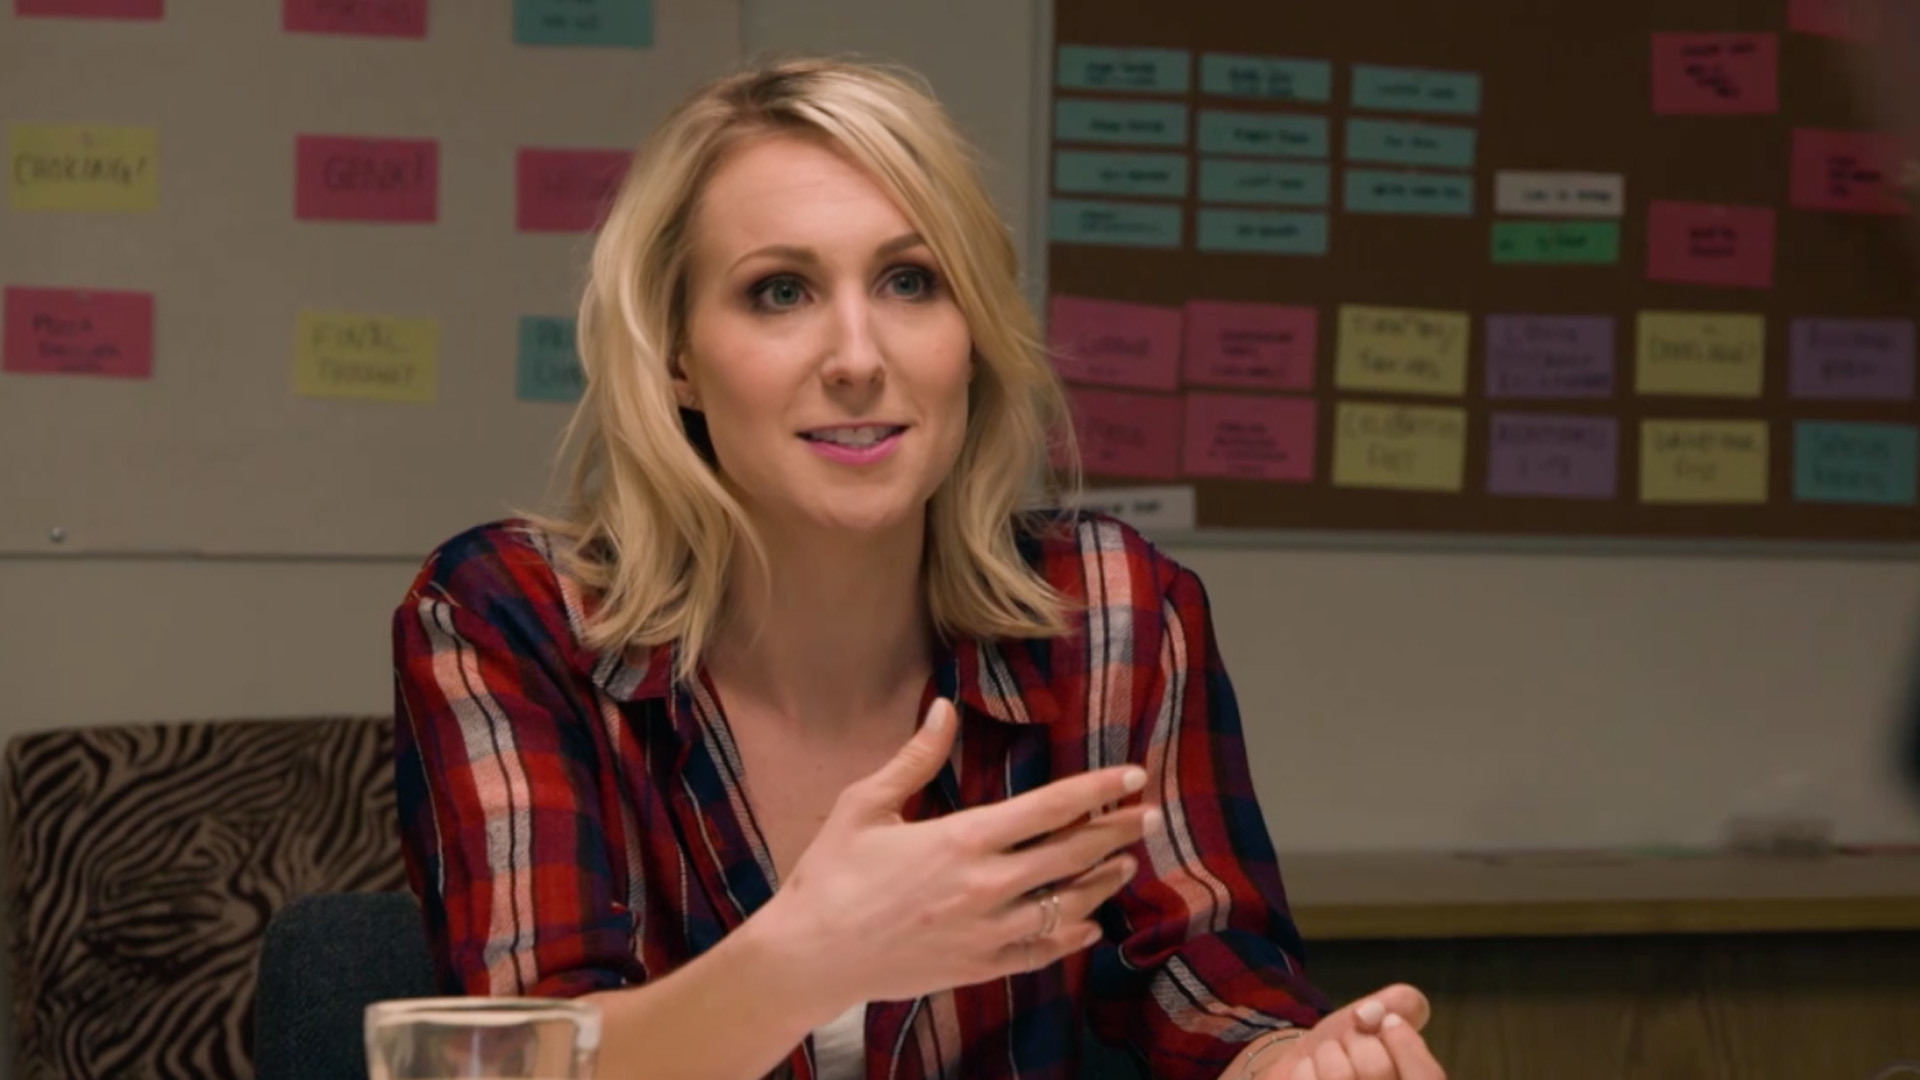 SNEAK PEEK: NOT SAFE WITH NIKKI GLASER - LIE DETECTOR TEST